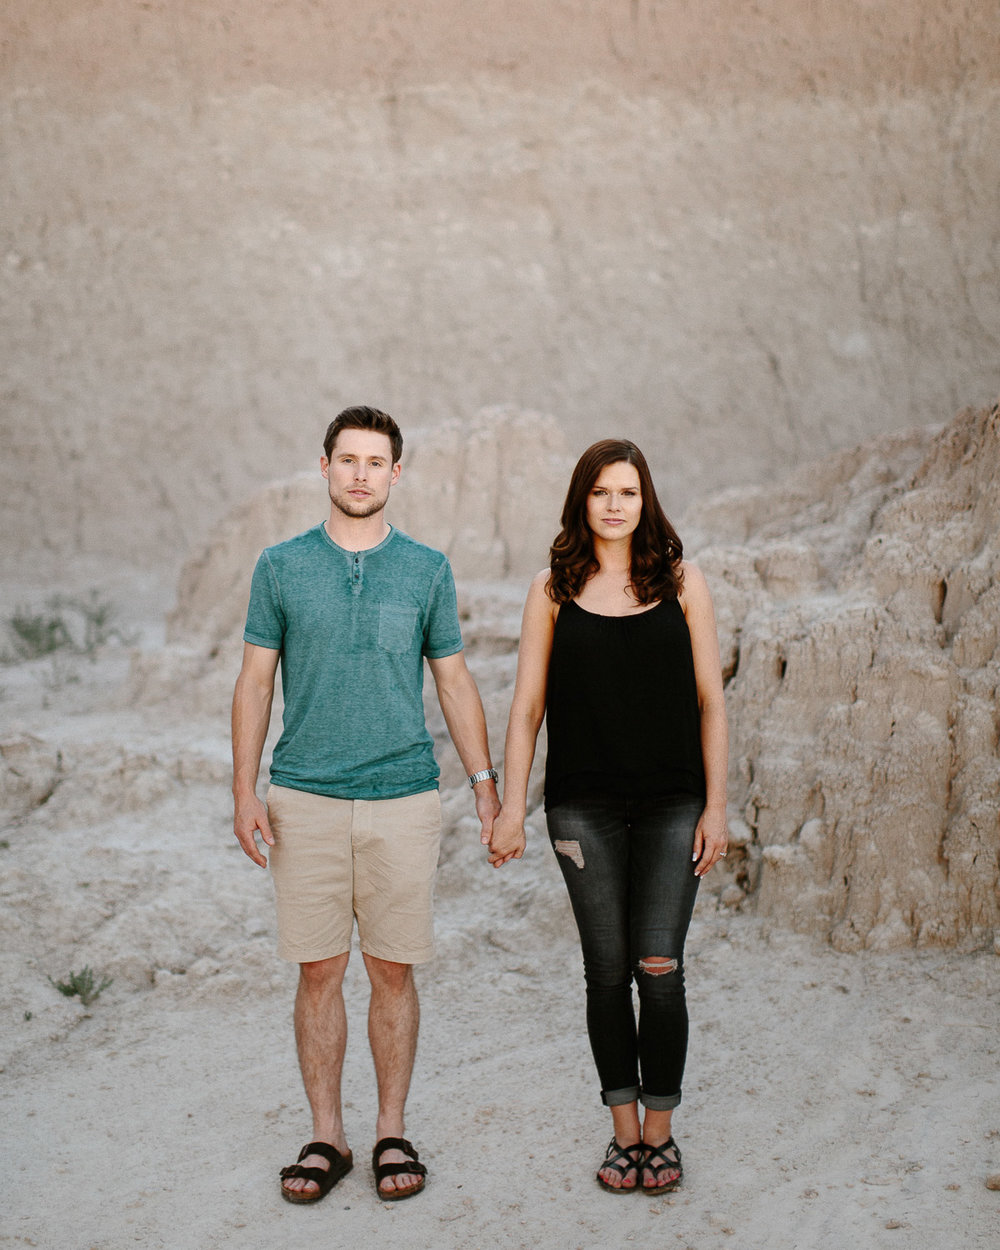 Alyssa&Forrest_Badlands_Adventure_Engagement_07.jpg